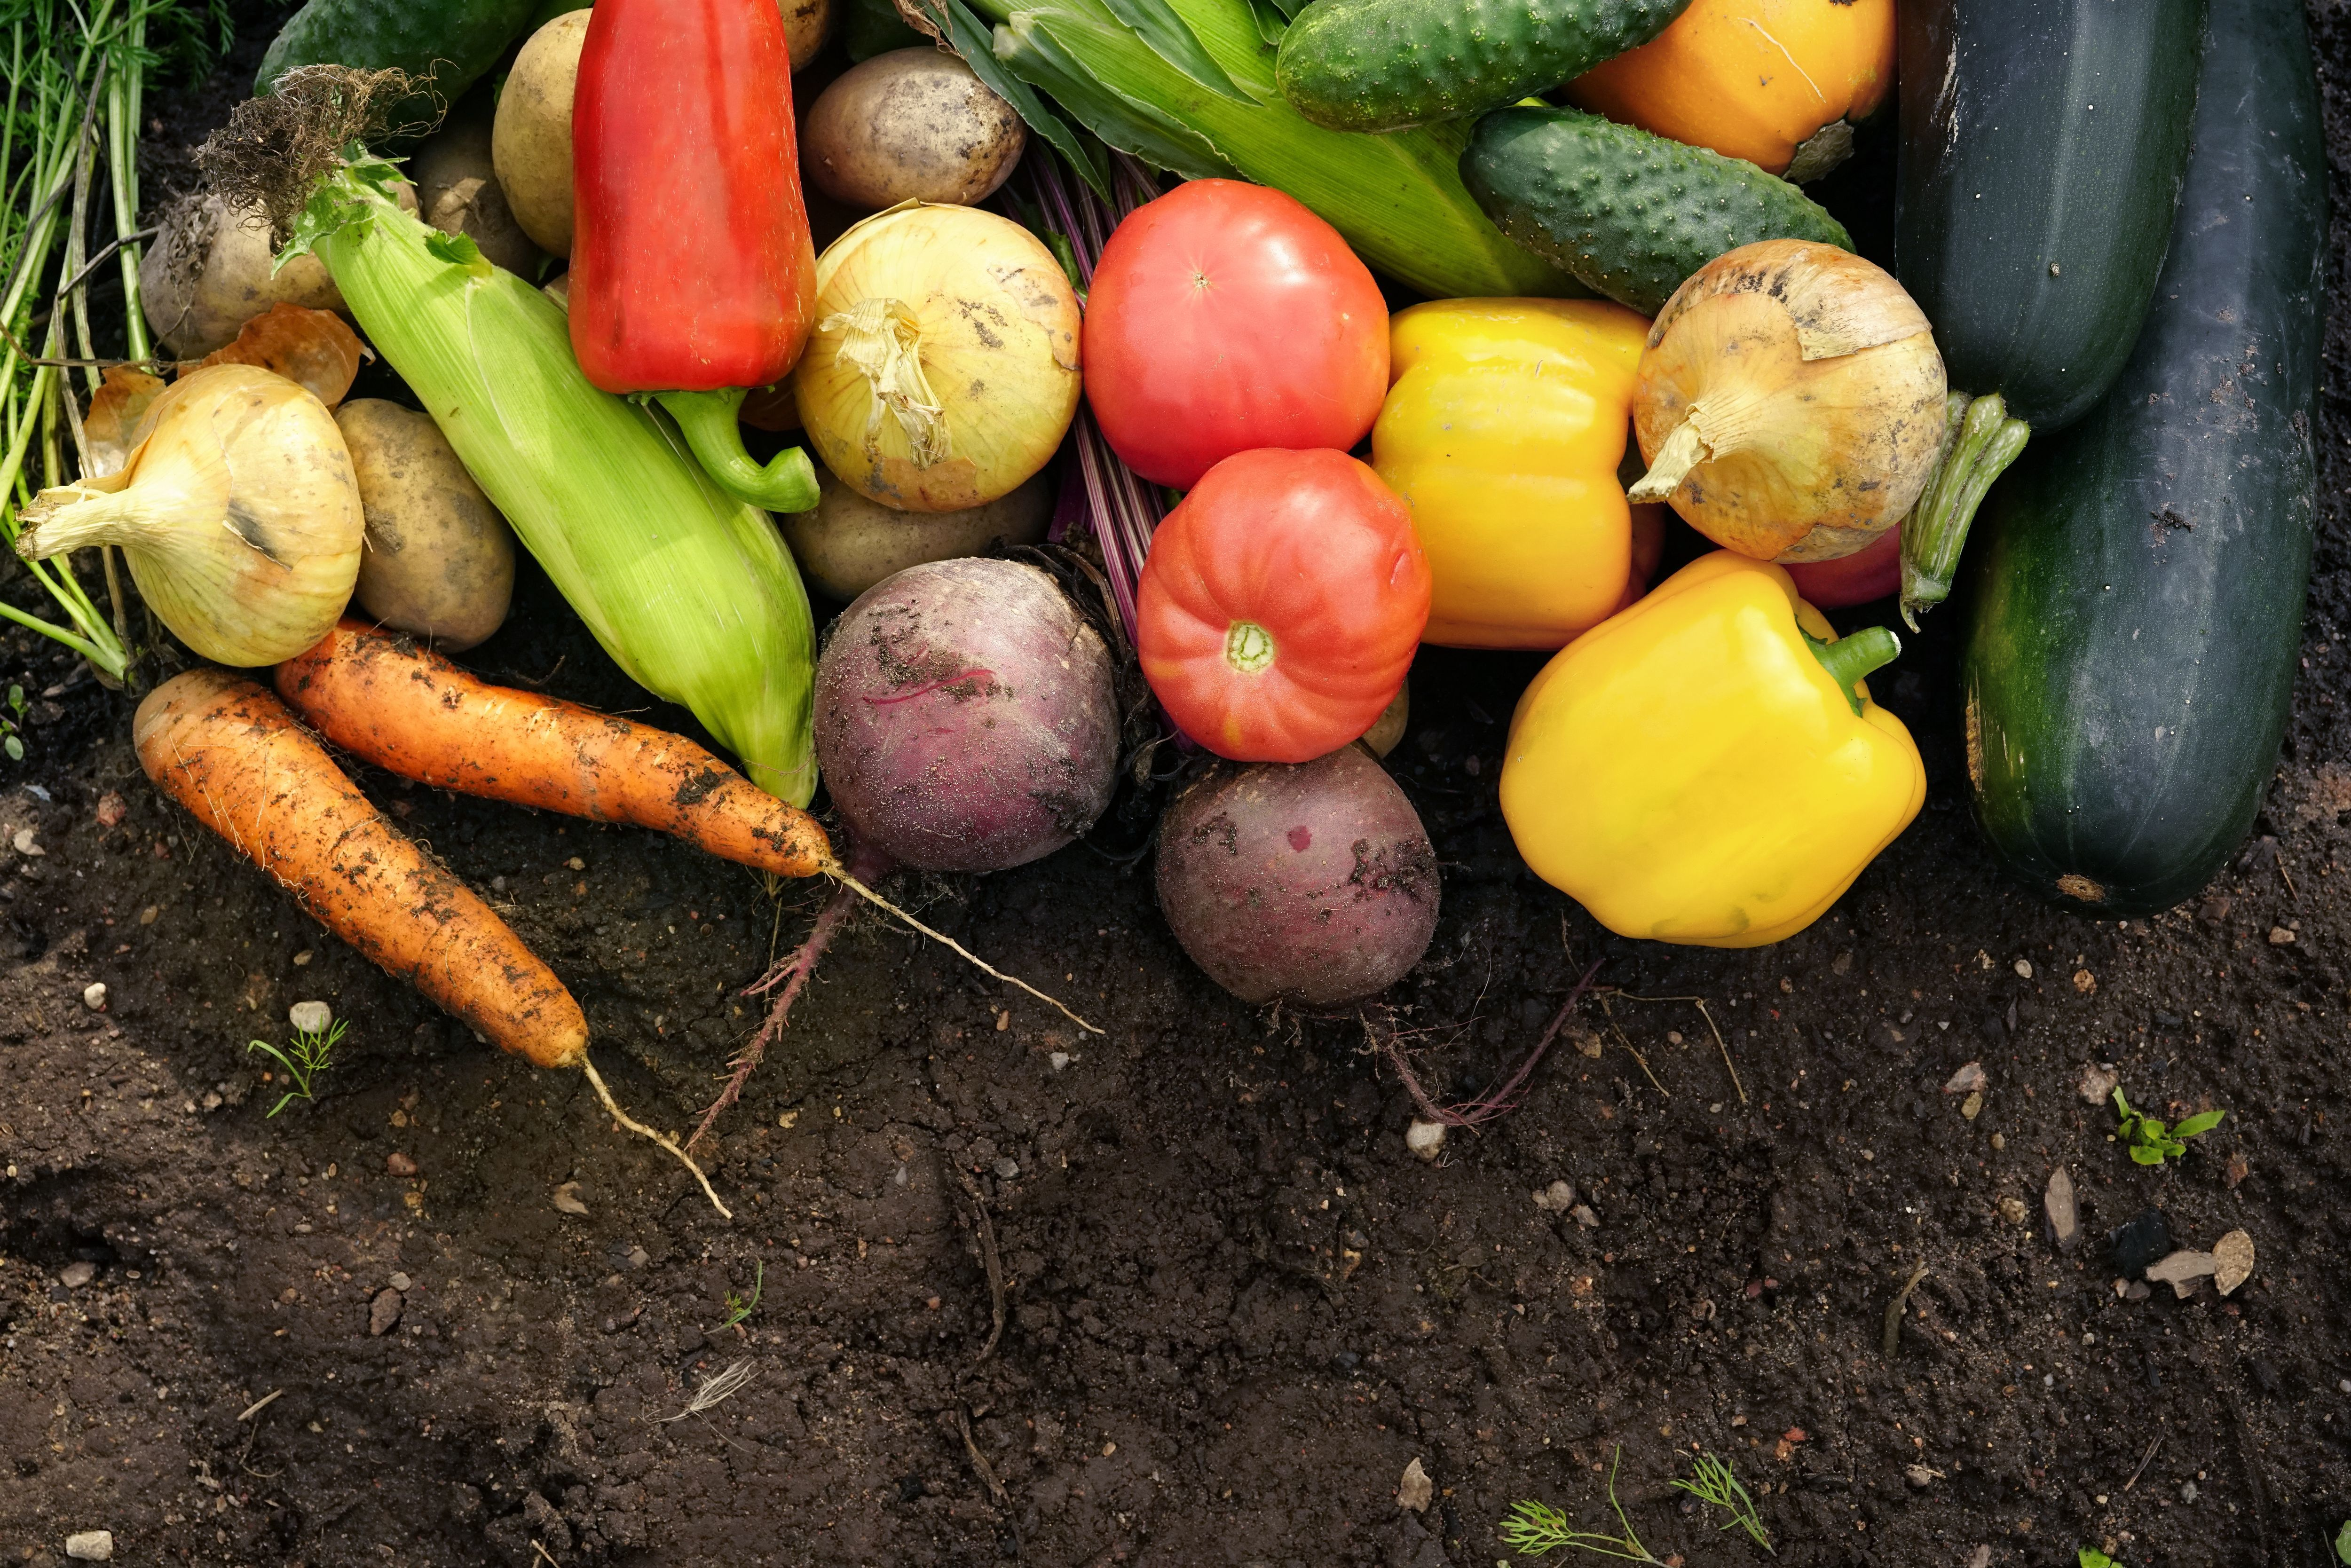 A collection of recently harvested vegetables: onions, carrots, corn, peppers, beetroot, tomatoes, cucumbers and marrows